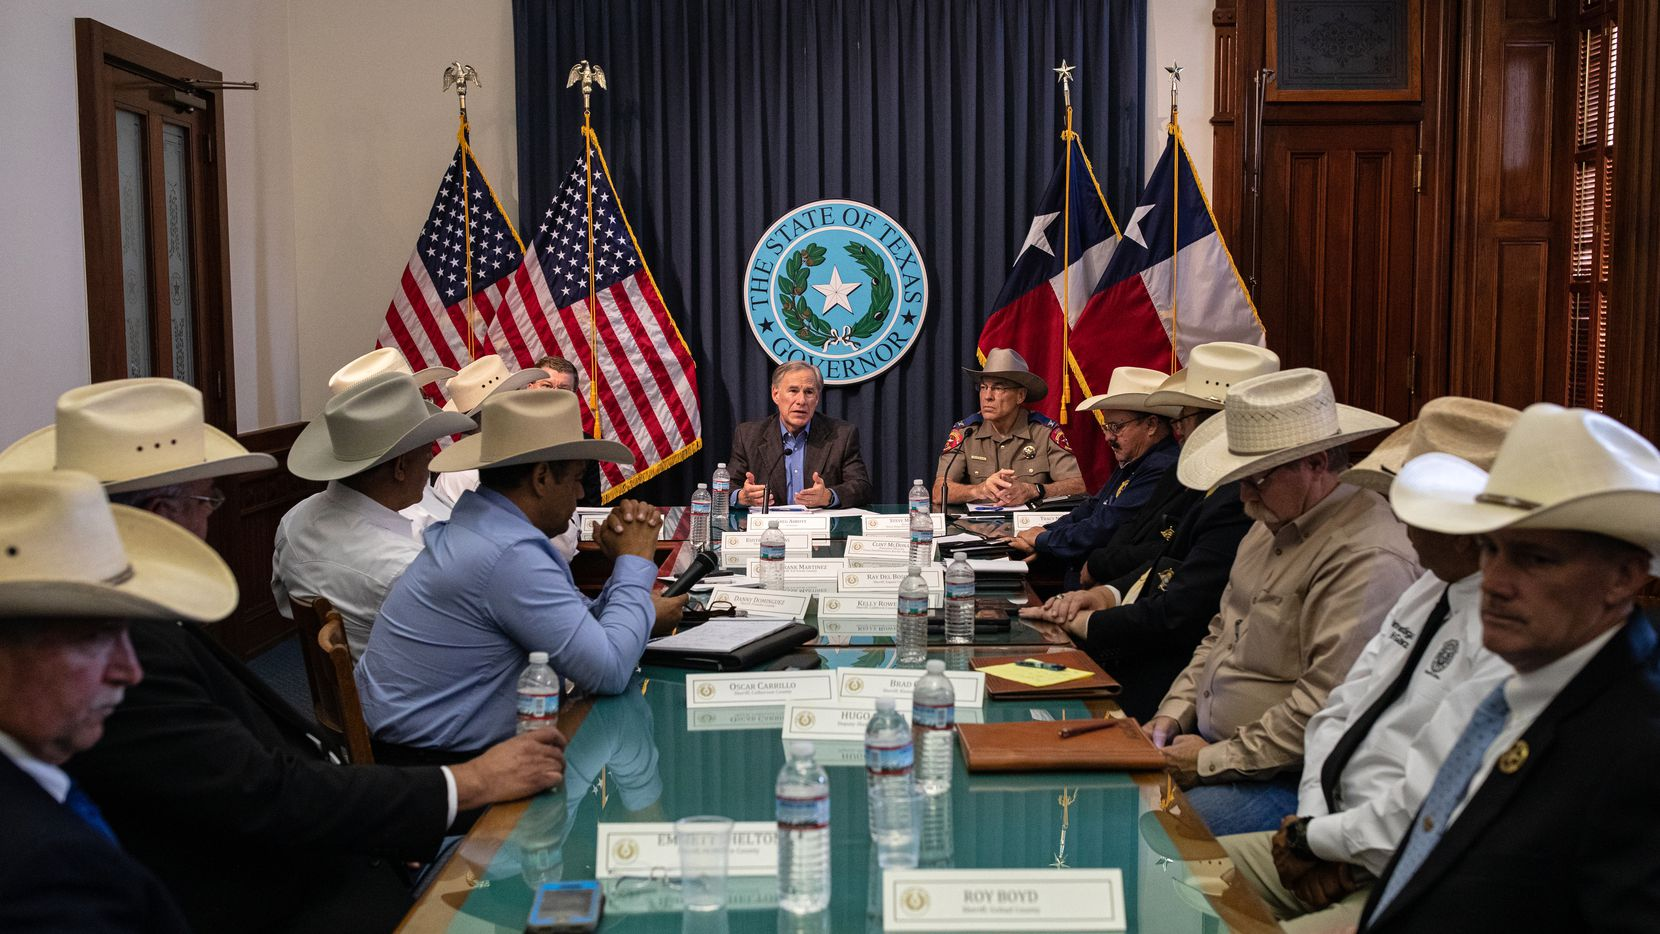 Gov. Greg Abbott, shown with border community sheriffs at the Texas Capitol on July 10, was tested for COVID-19 on Thursday, and got a negative result. Abbott took the test a day after a Florida politician who attended his weekend border security event in Del Rio announced she'd become infected by the virus.